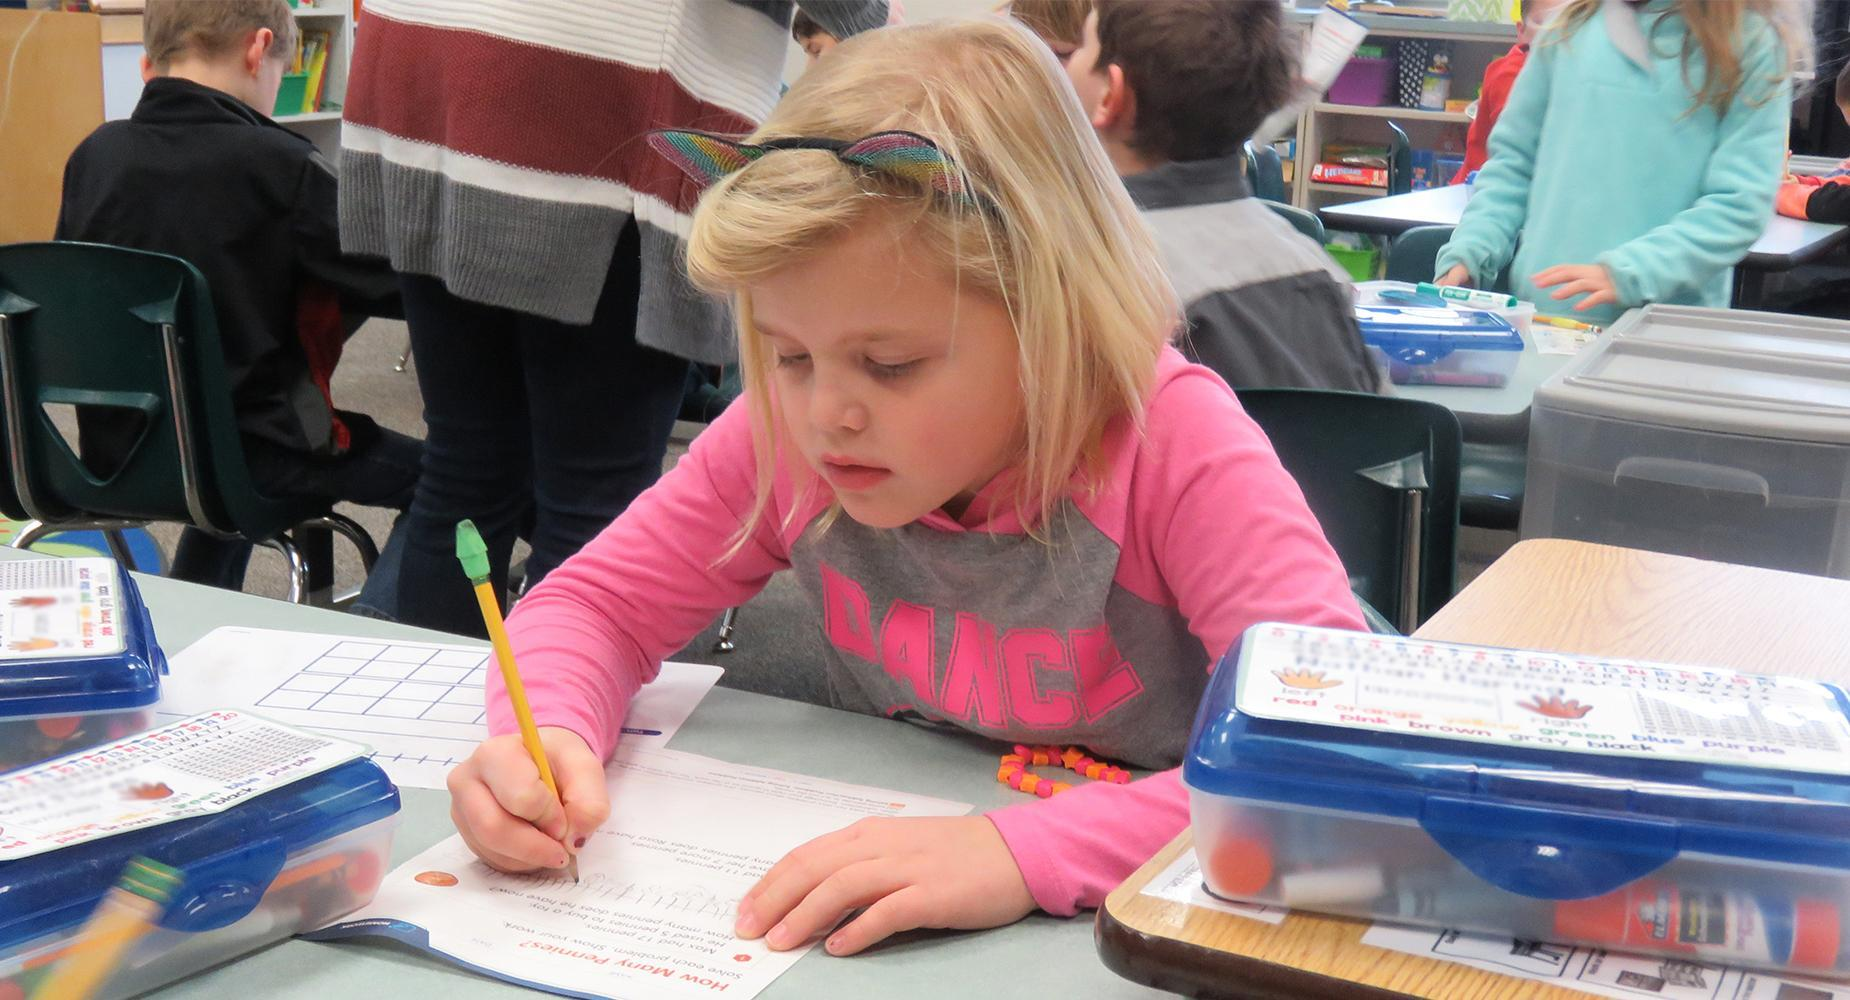 Girl in pink shirt works on worksheet at her desk.